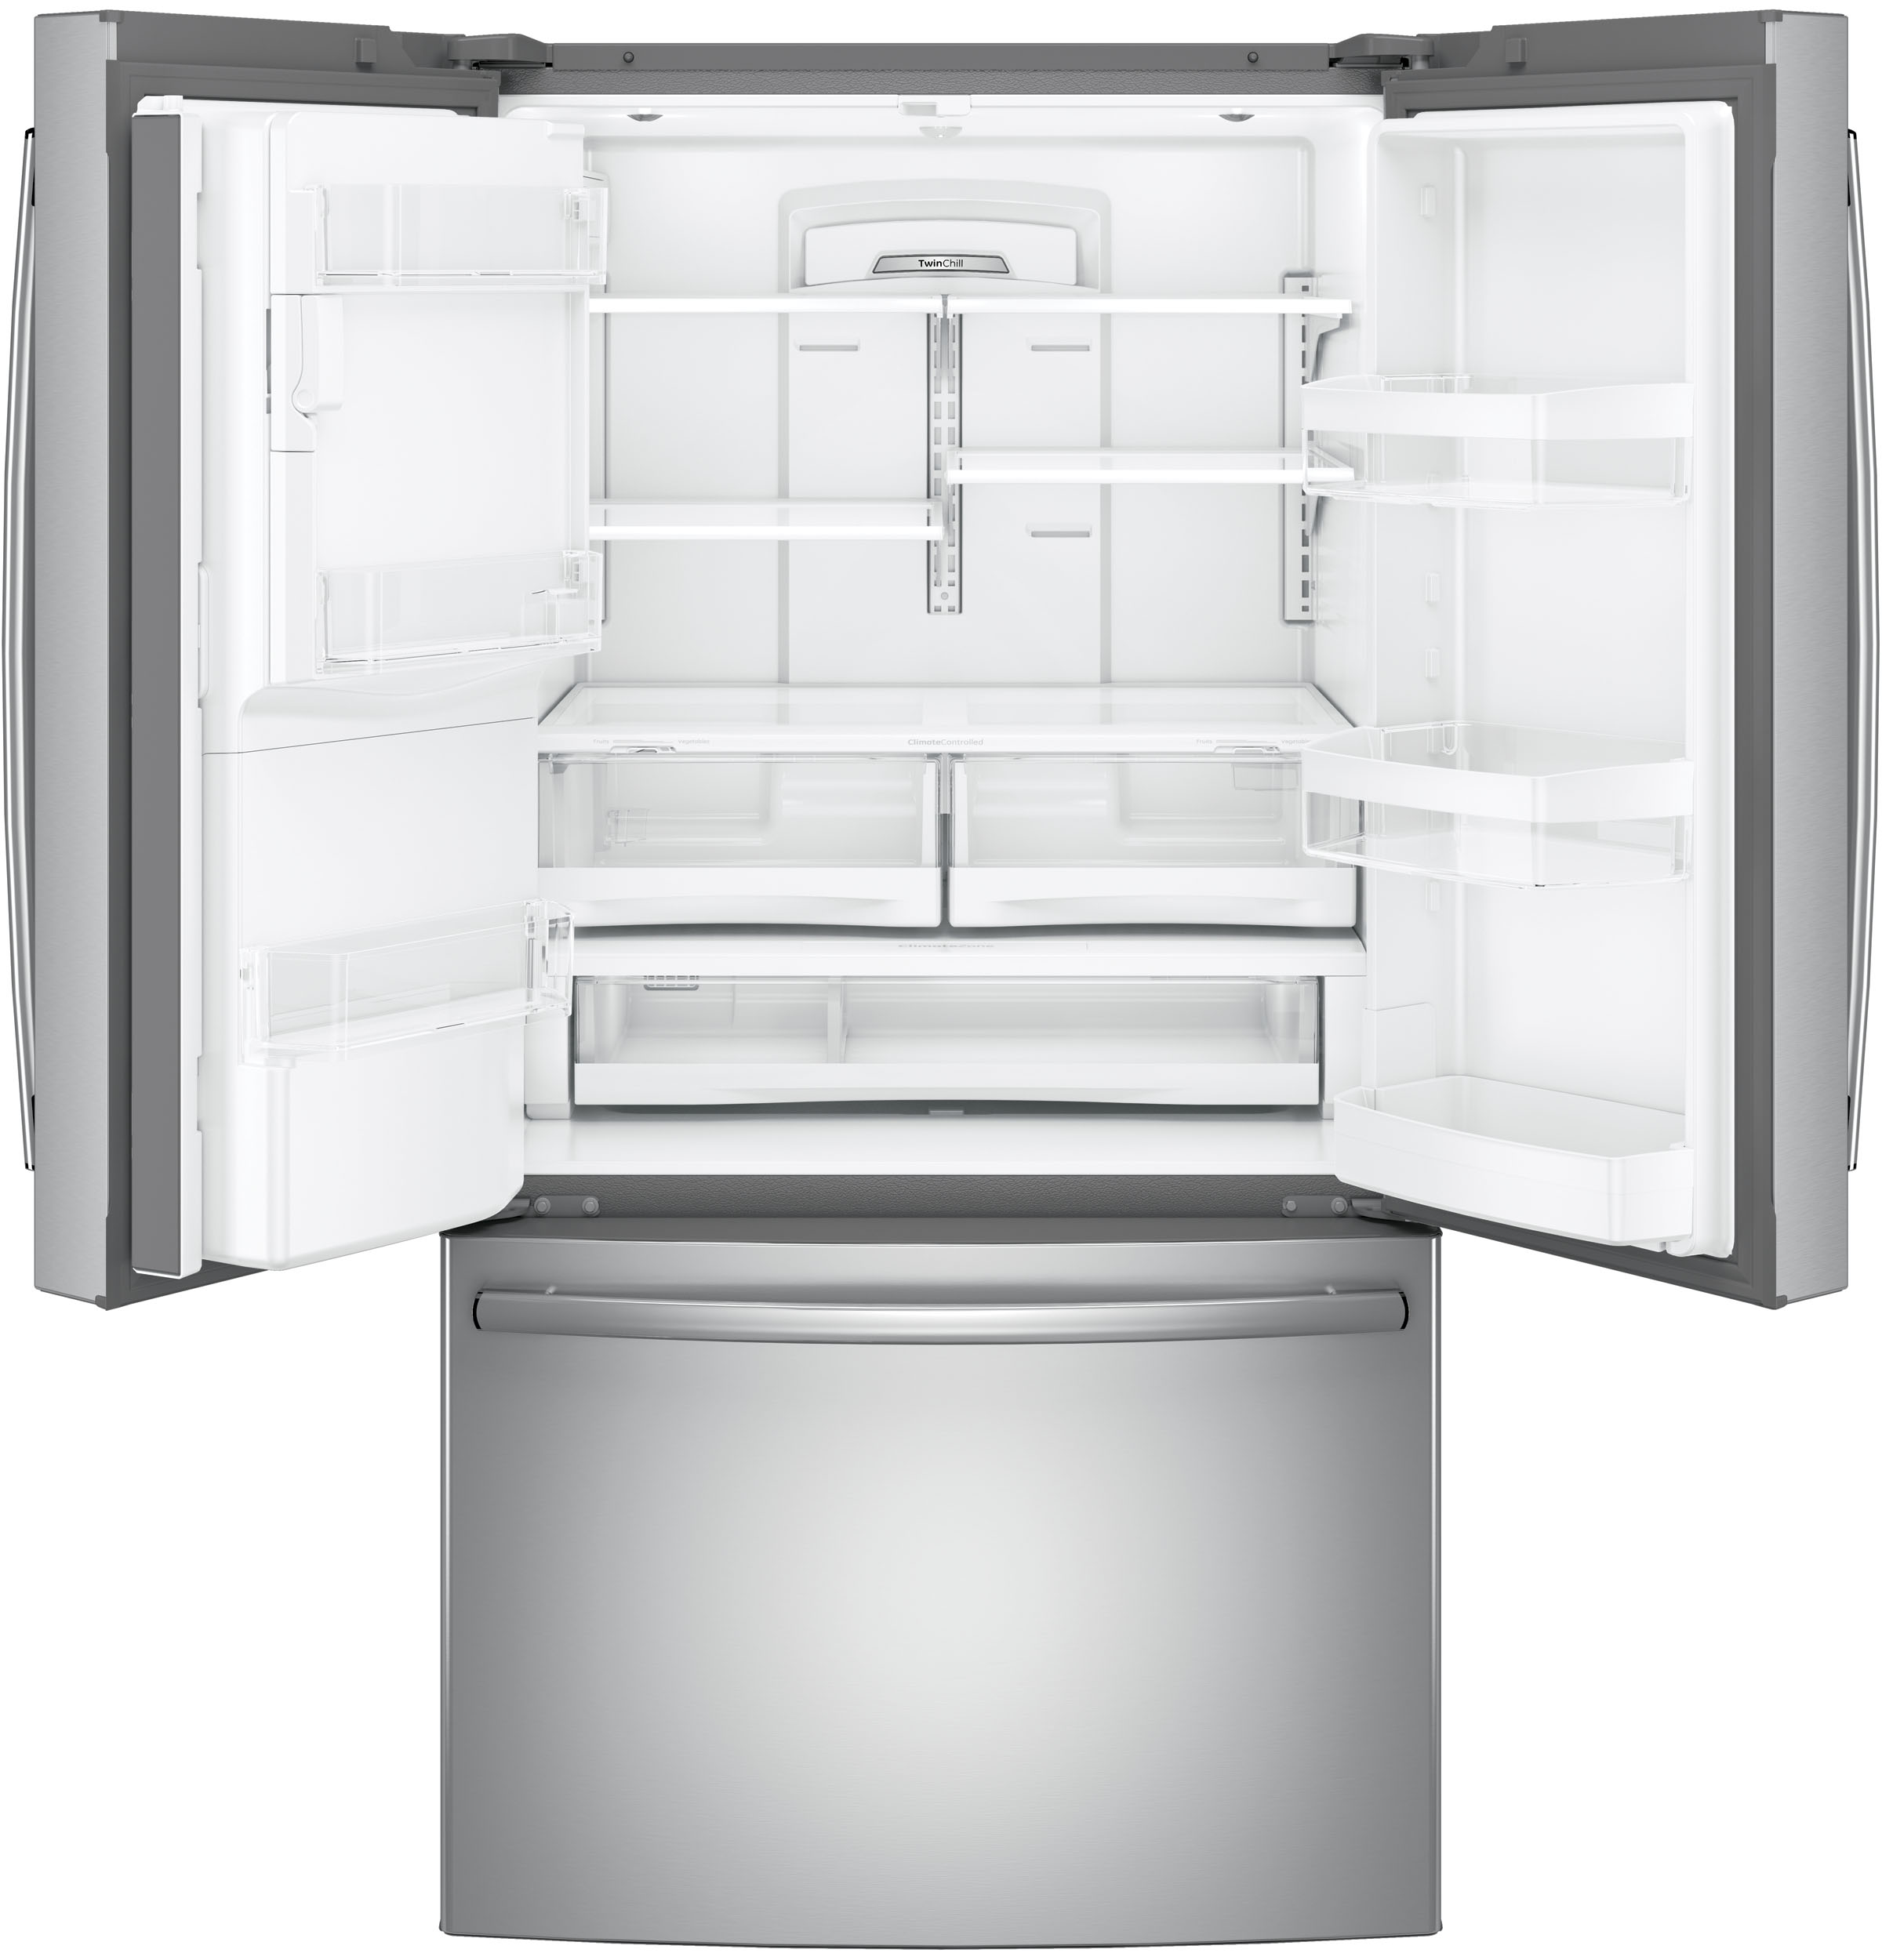 GE Appliances GFE28GSKSS 27.8 cu. ft. French Door Refrigerator - Stainless Steel